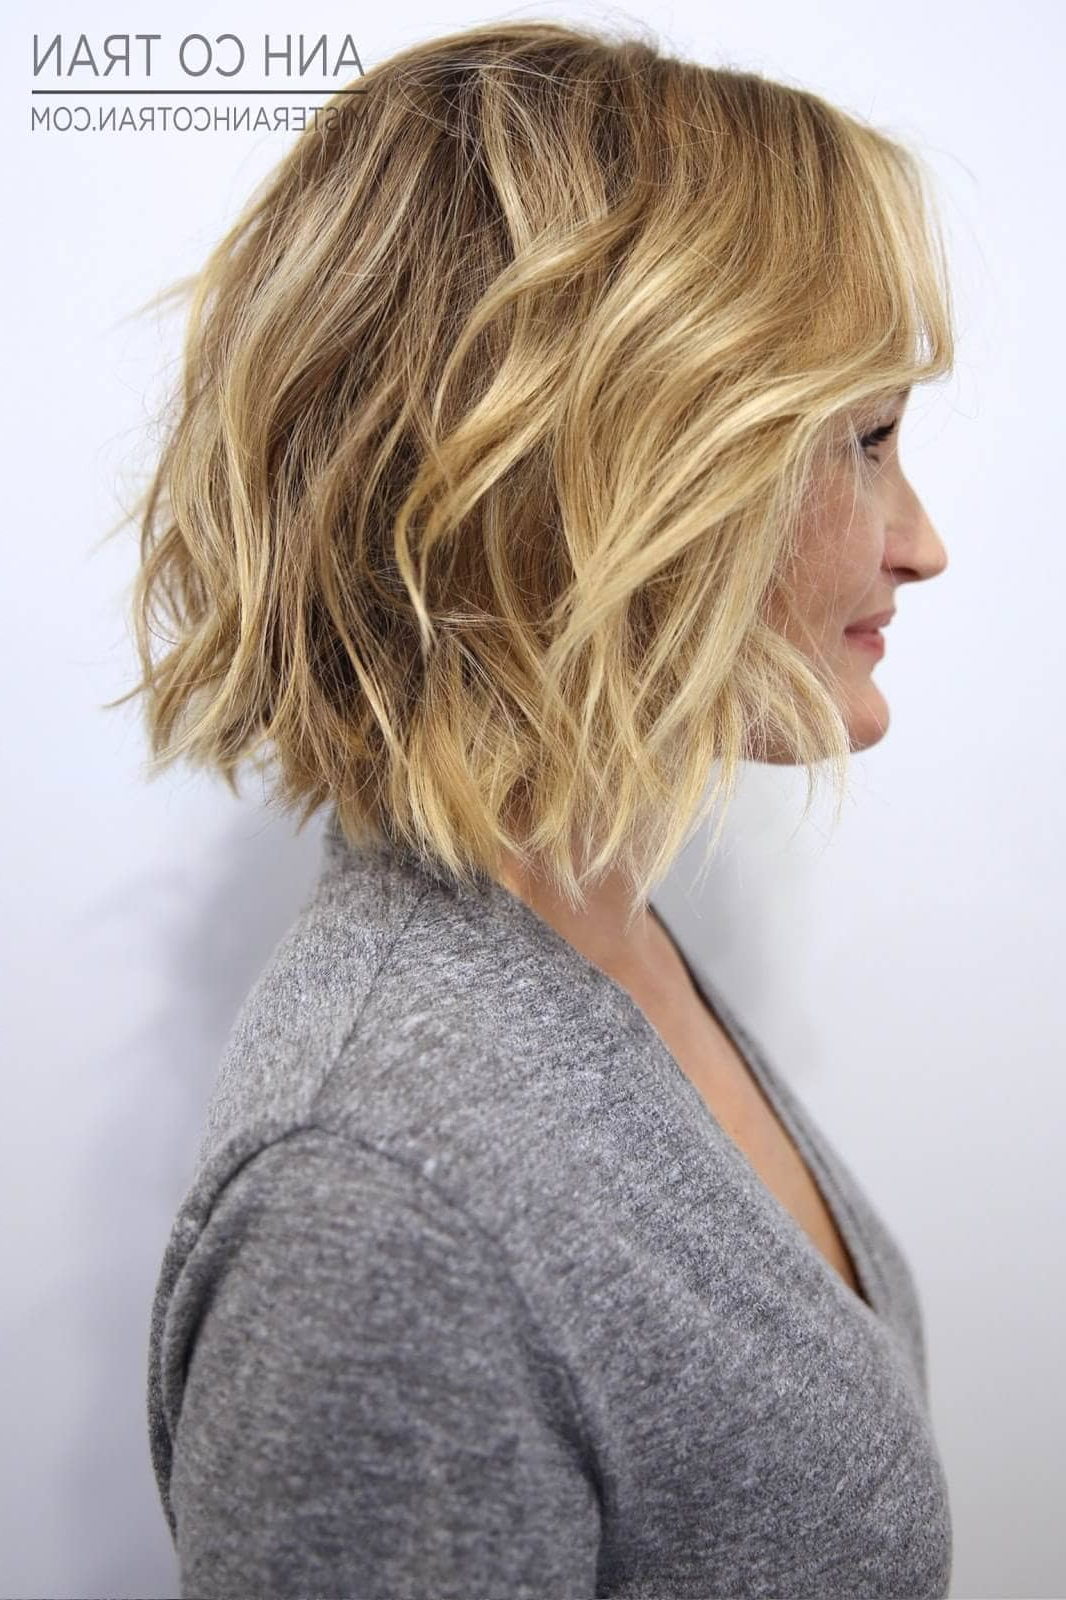 50 Ways To Wear Short Hair With Bangs For A Fresh New Look Regarding Frizzy Razored White Blonde Bob Haircuts (View 12 of 20)